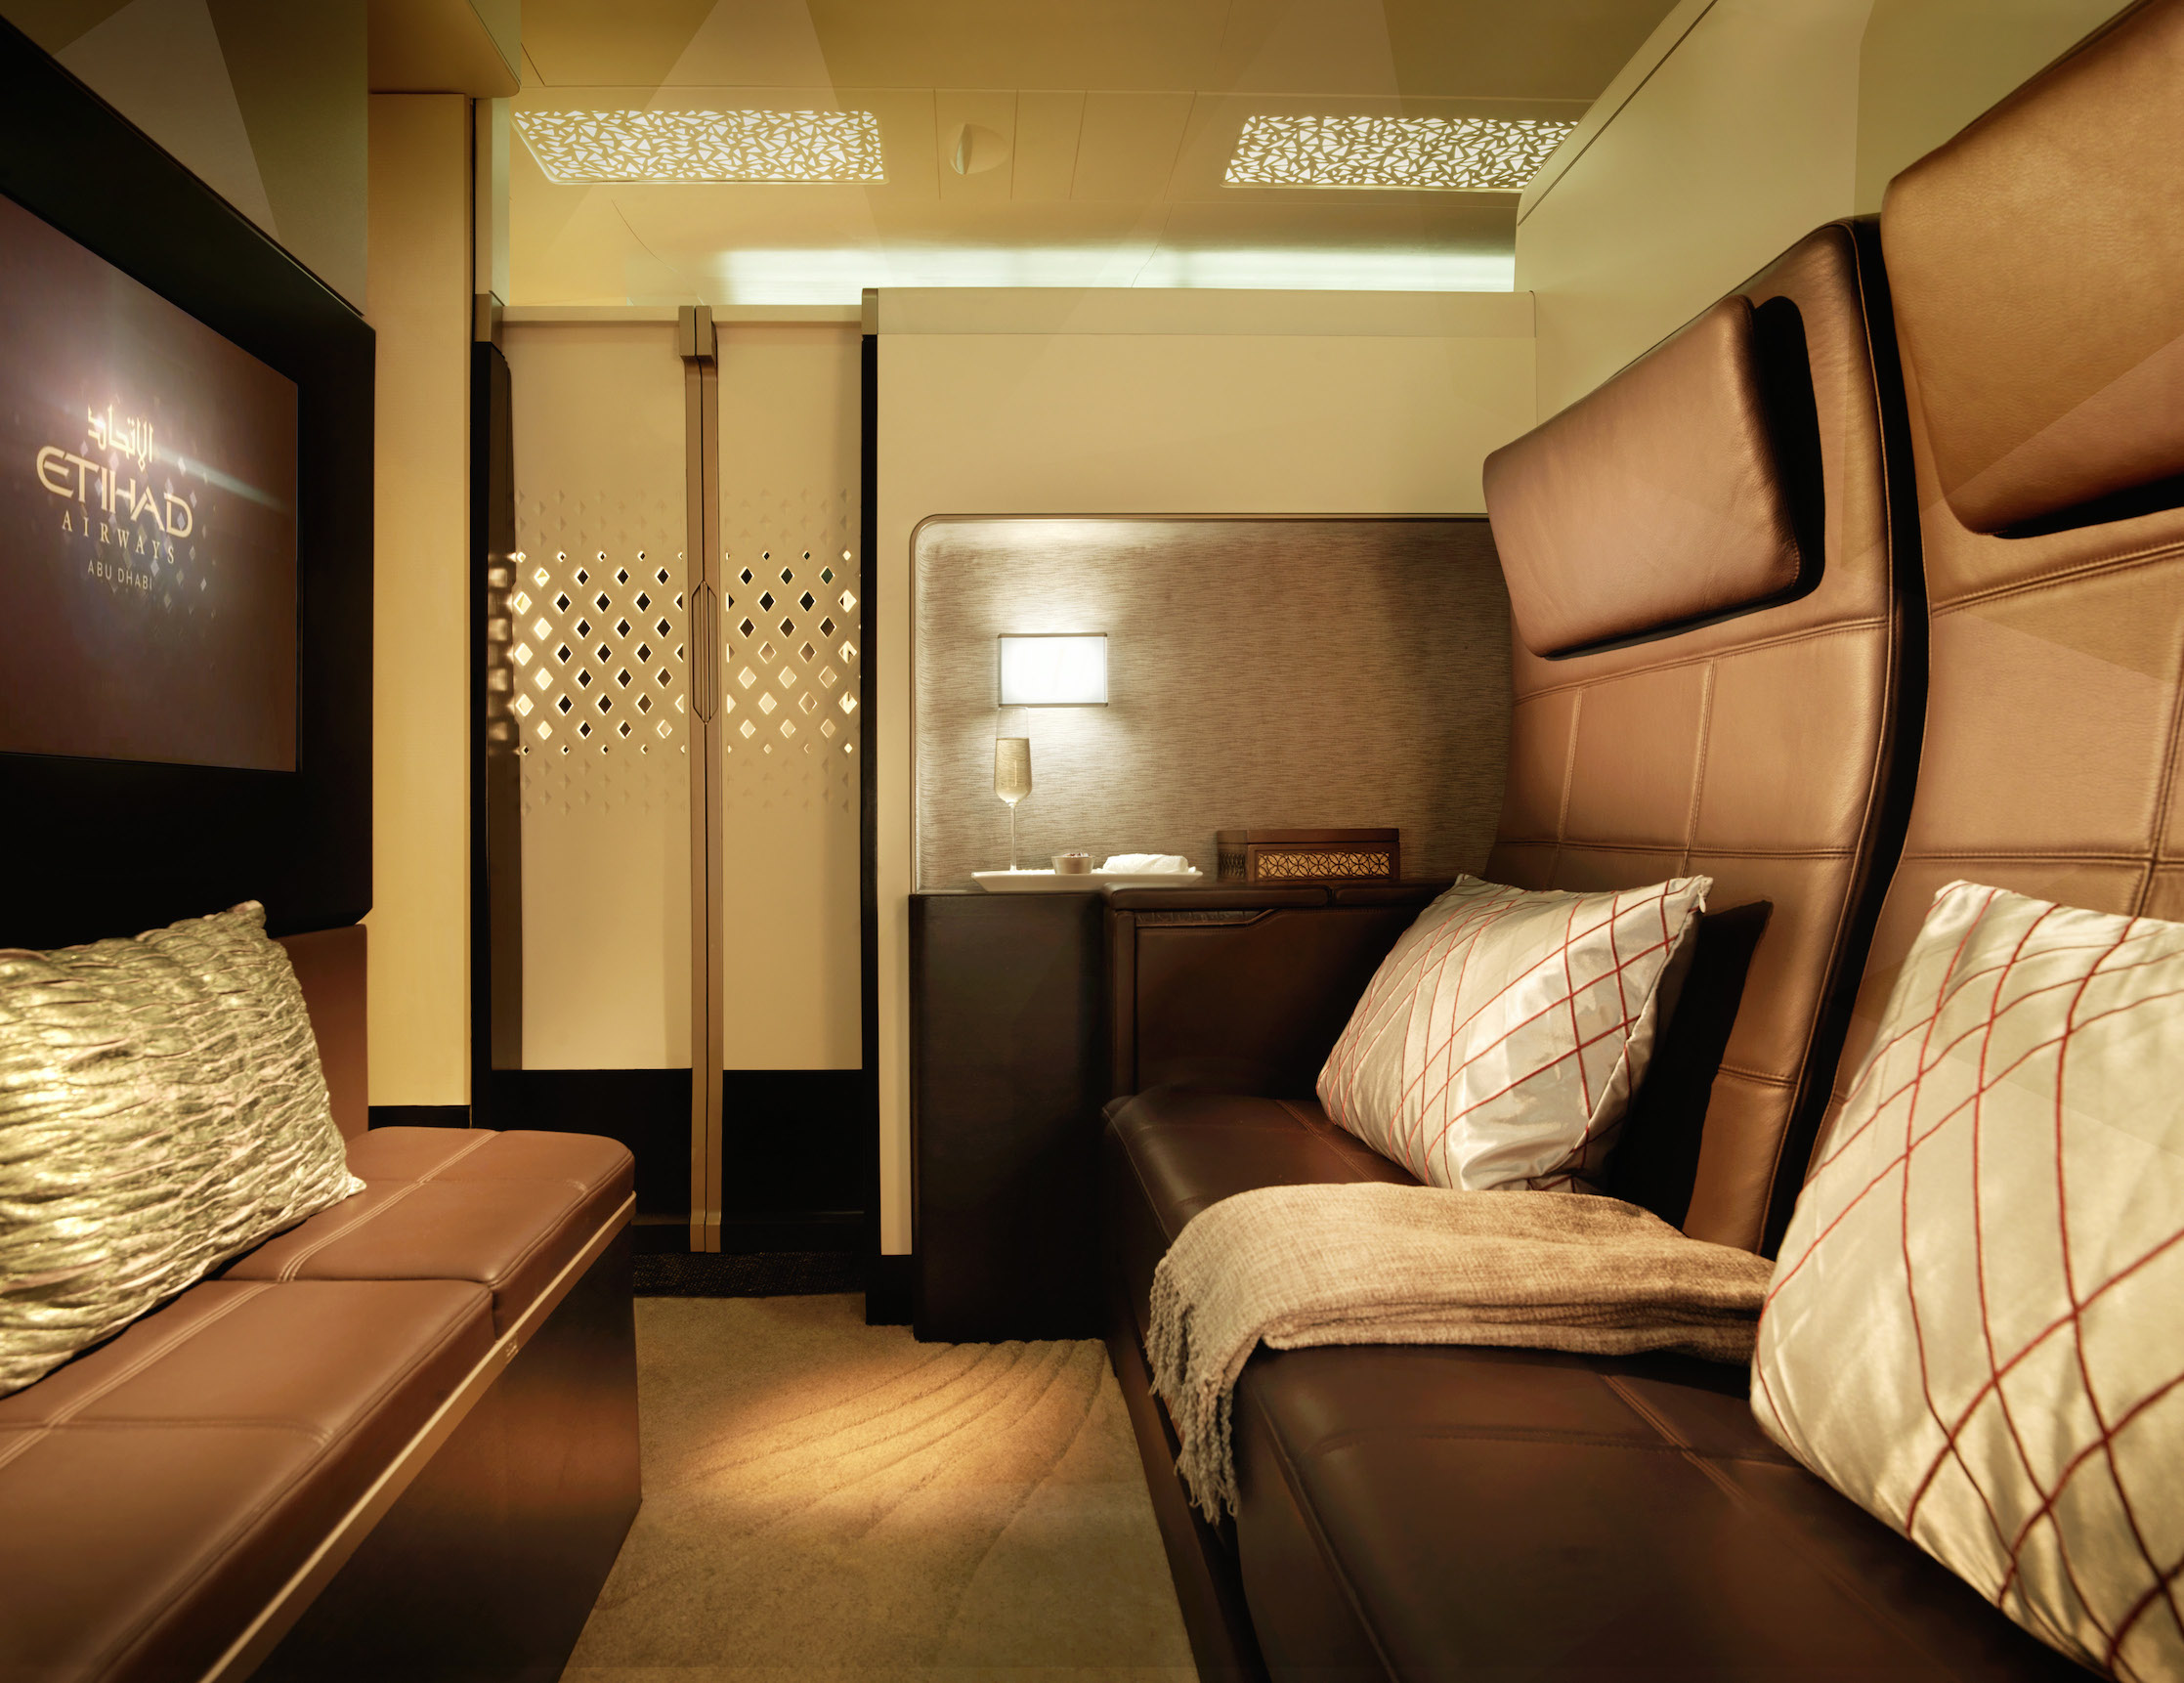 Passengers who book Etihad Airways' The Residence—a private suite that includes a bedroom, bathroom, and a lounge area—pay $38,000 to fly from Mumbai to NYC.